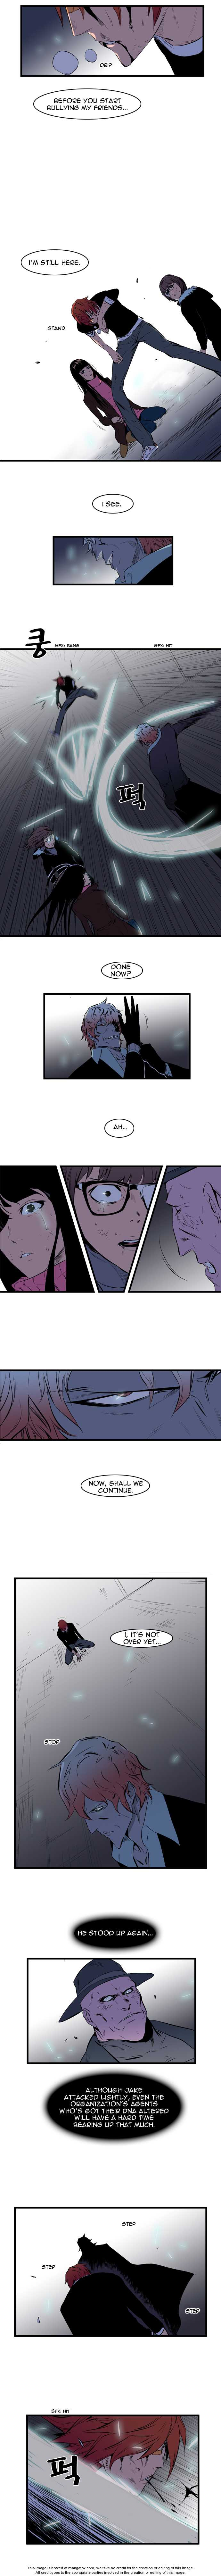 Noblesse 70 Page 3